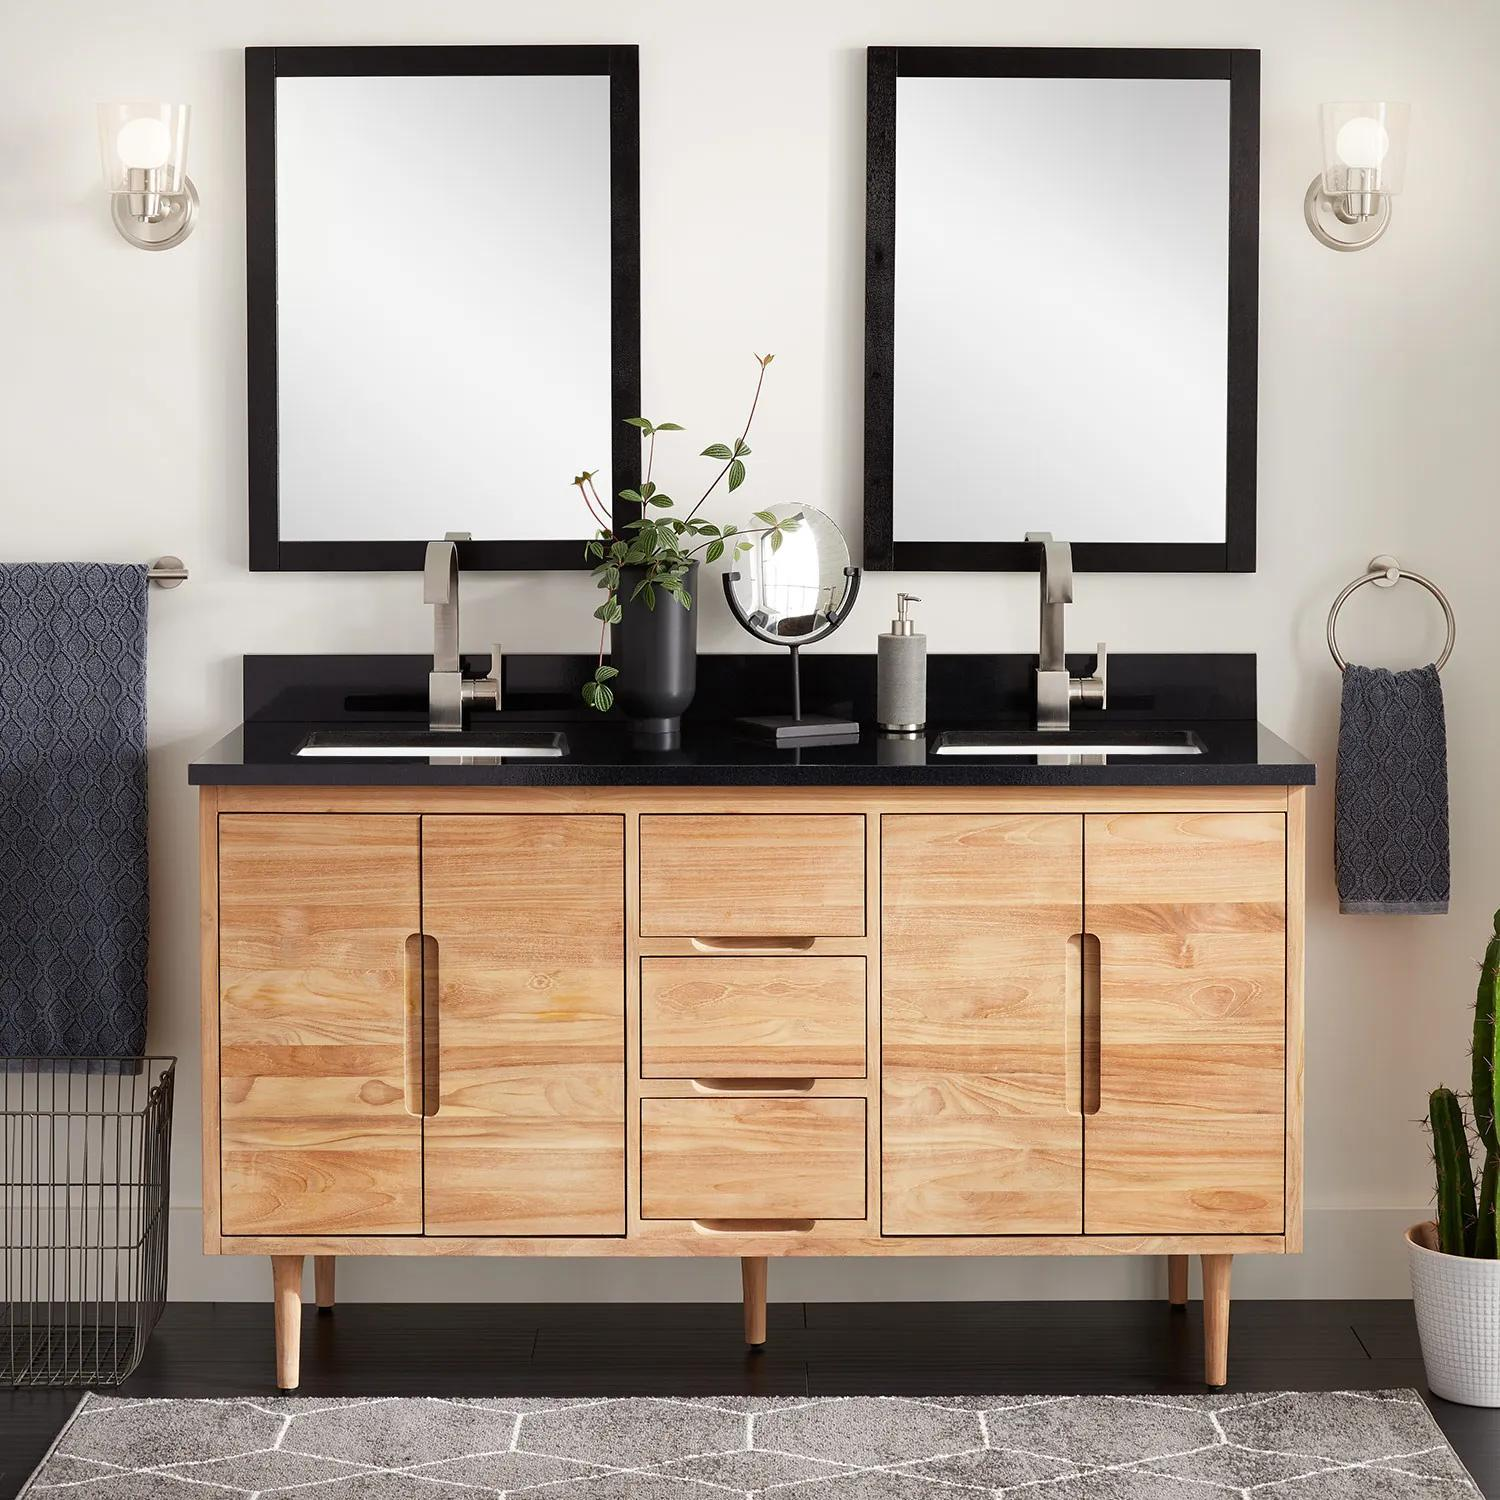 60 Bivins Teak Double Bathroom Vanity For Rectangular Undermount Sinks Natural Teak Bathroom